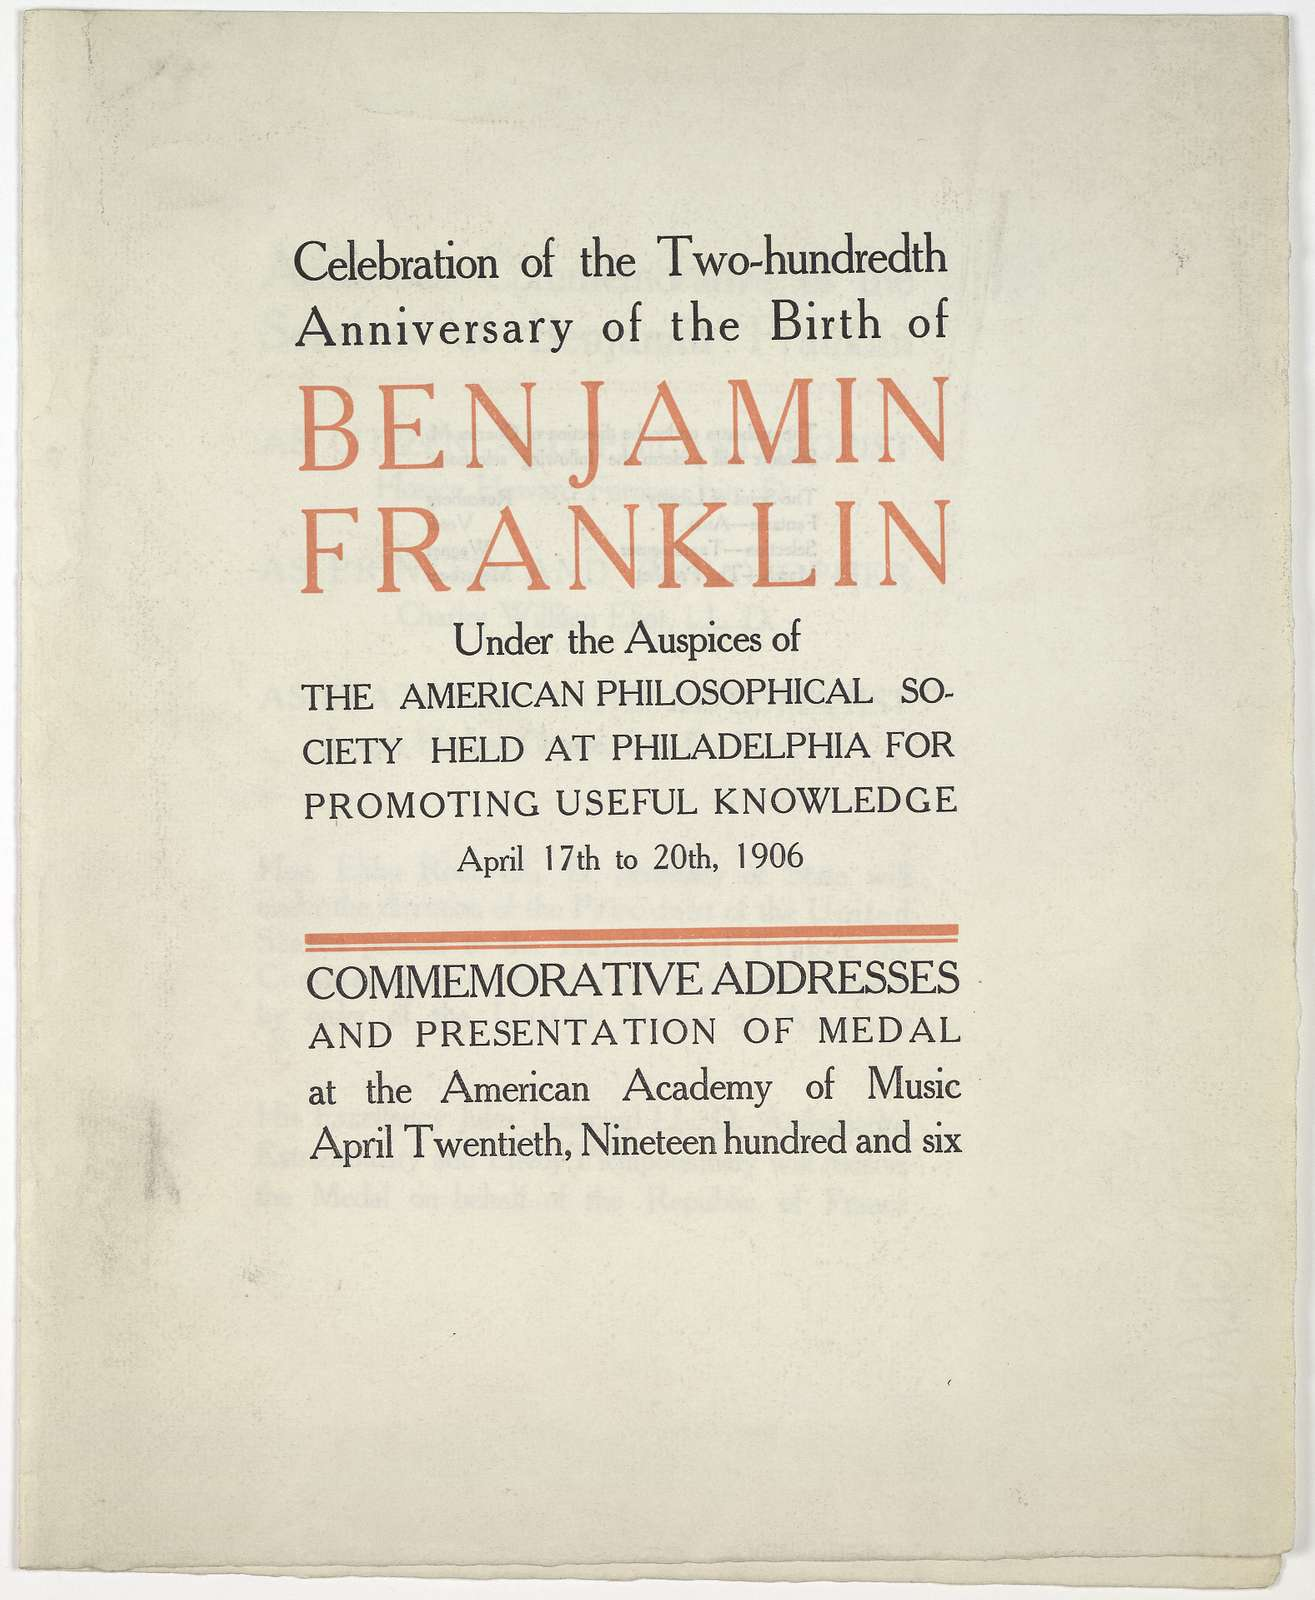 Celebration of the two-hundreth anniversary of the birth of Benjamin Franklin under the auspices of the American Philosophical Society held at Philadelphia for promoting useful knowledge, April 17th to 20th, 1906